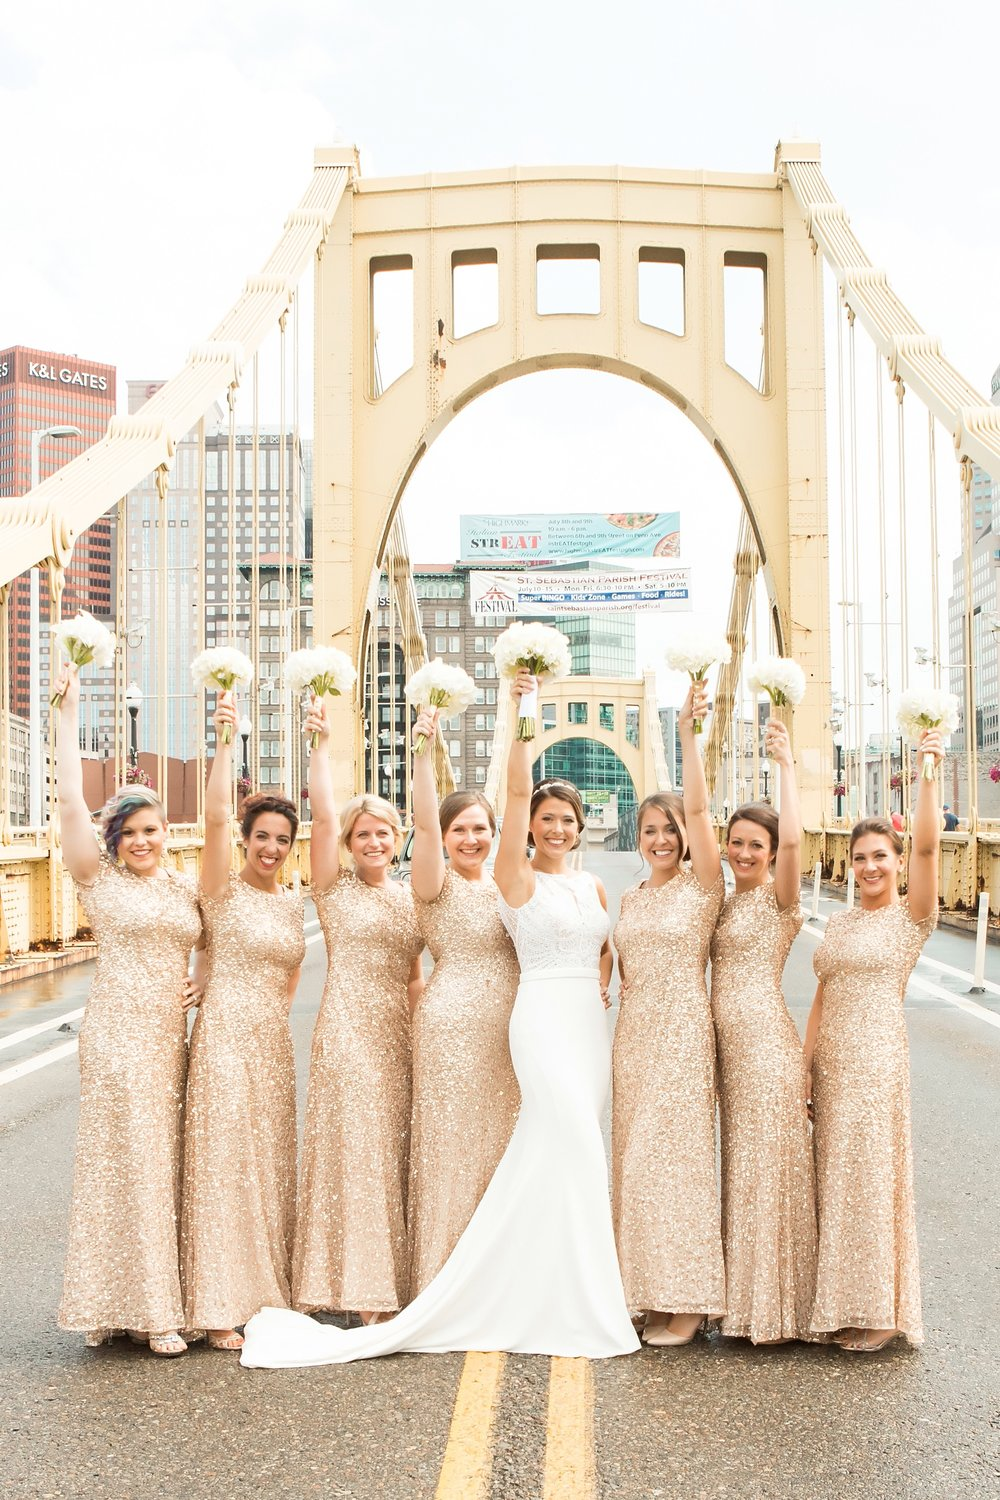 - Prices quoted are for on-location services. If your venue is located outside of a 30 mile service area of 15101, there is a travel fee of $0.65 per mile, each way, per driving stylist.